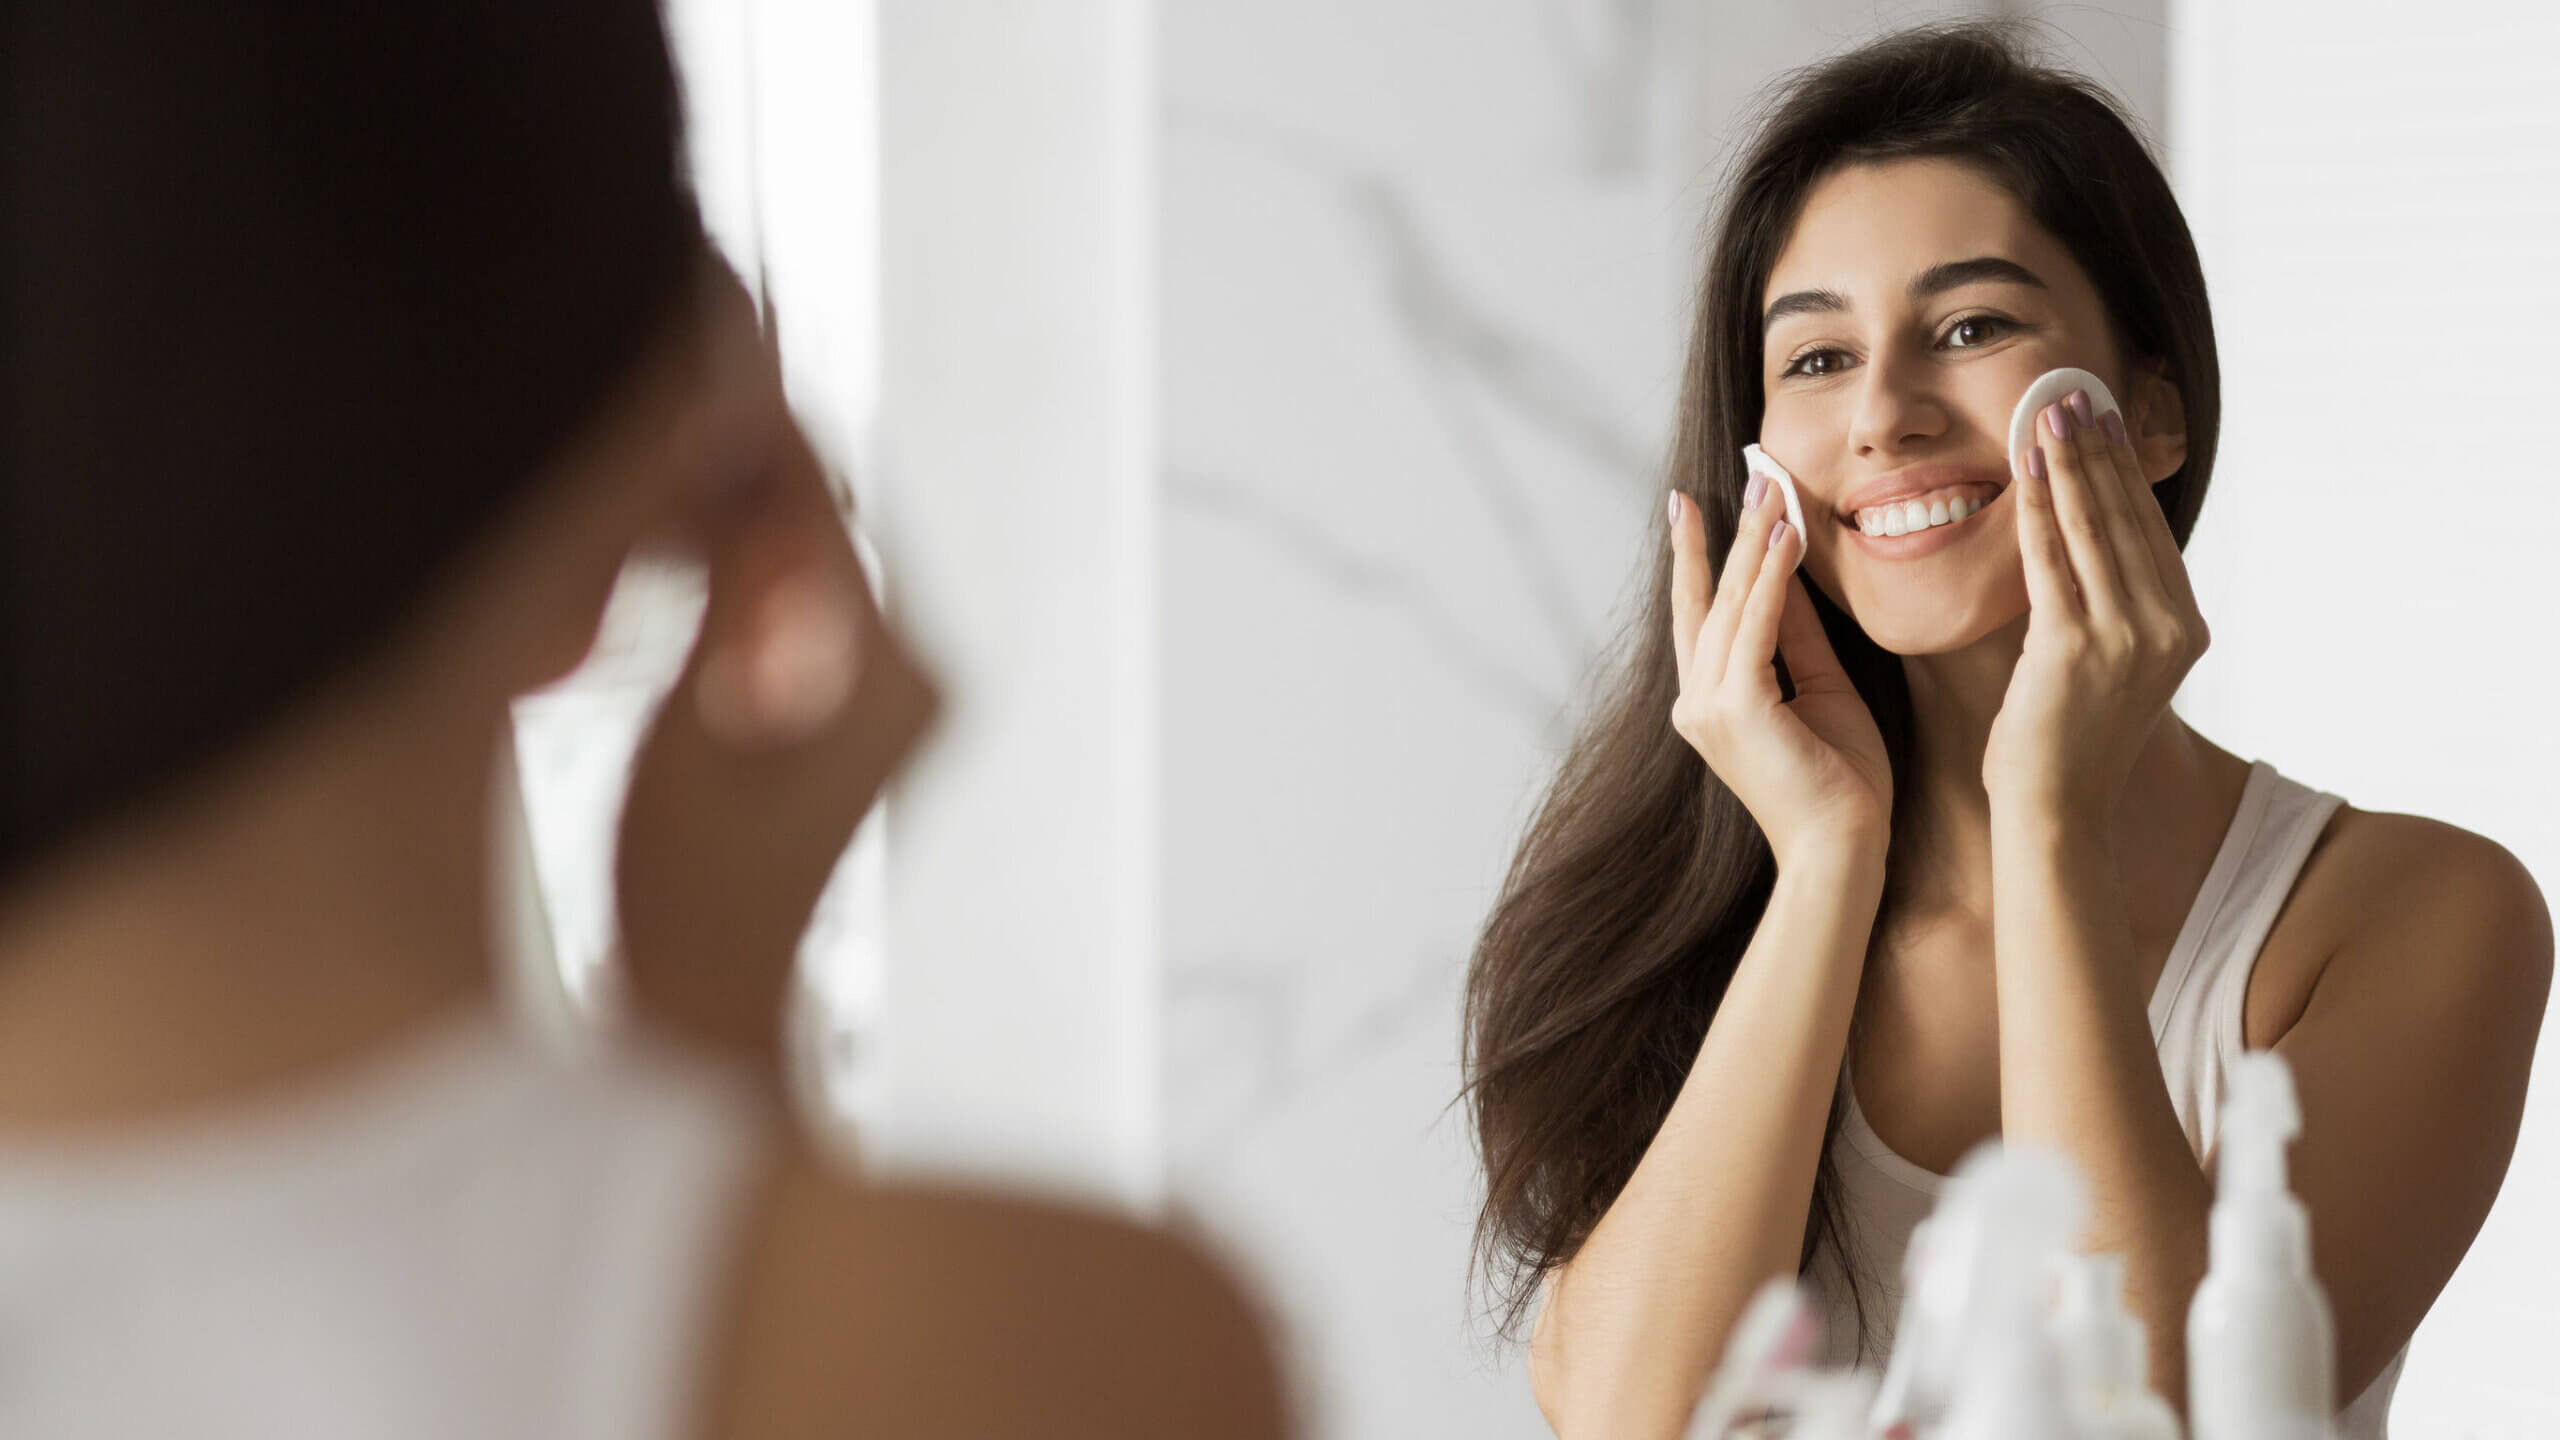 To wash the face properly it is necessary to fulfill a series of steps.